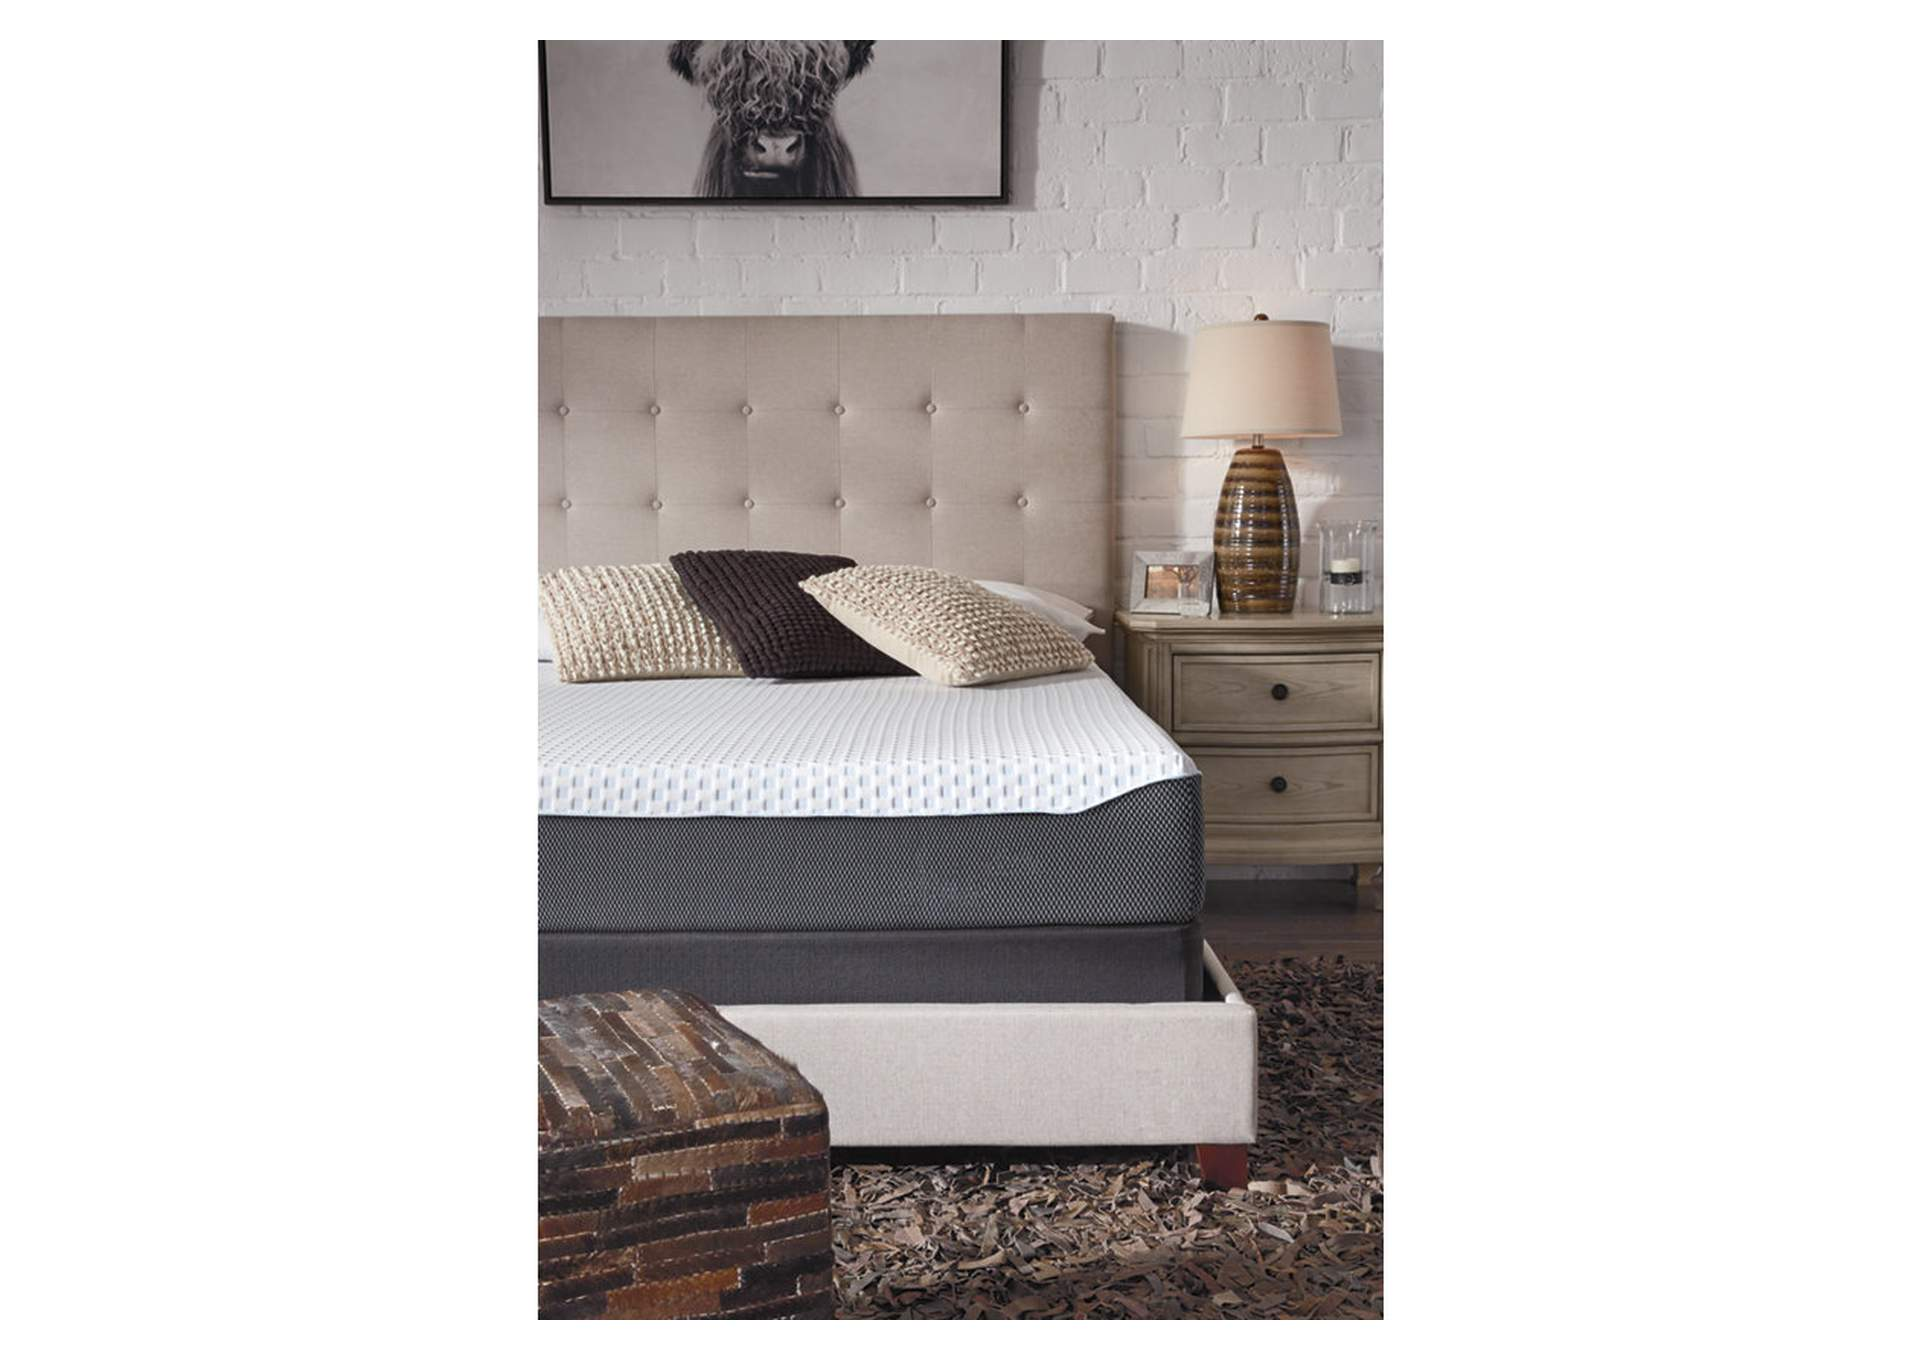 10 Inch Chime Elite Queen Memory Foam Mattress in a box,Sierra Sleep by Ashley